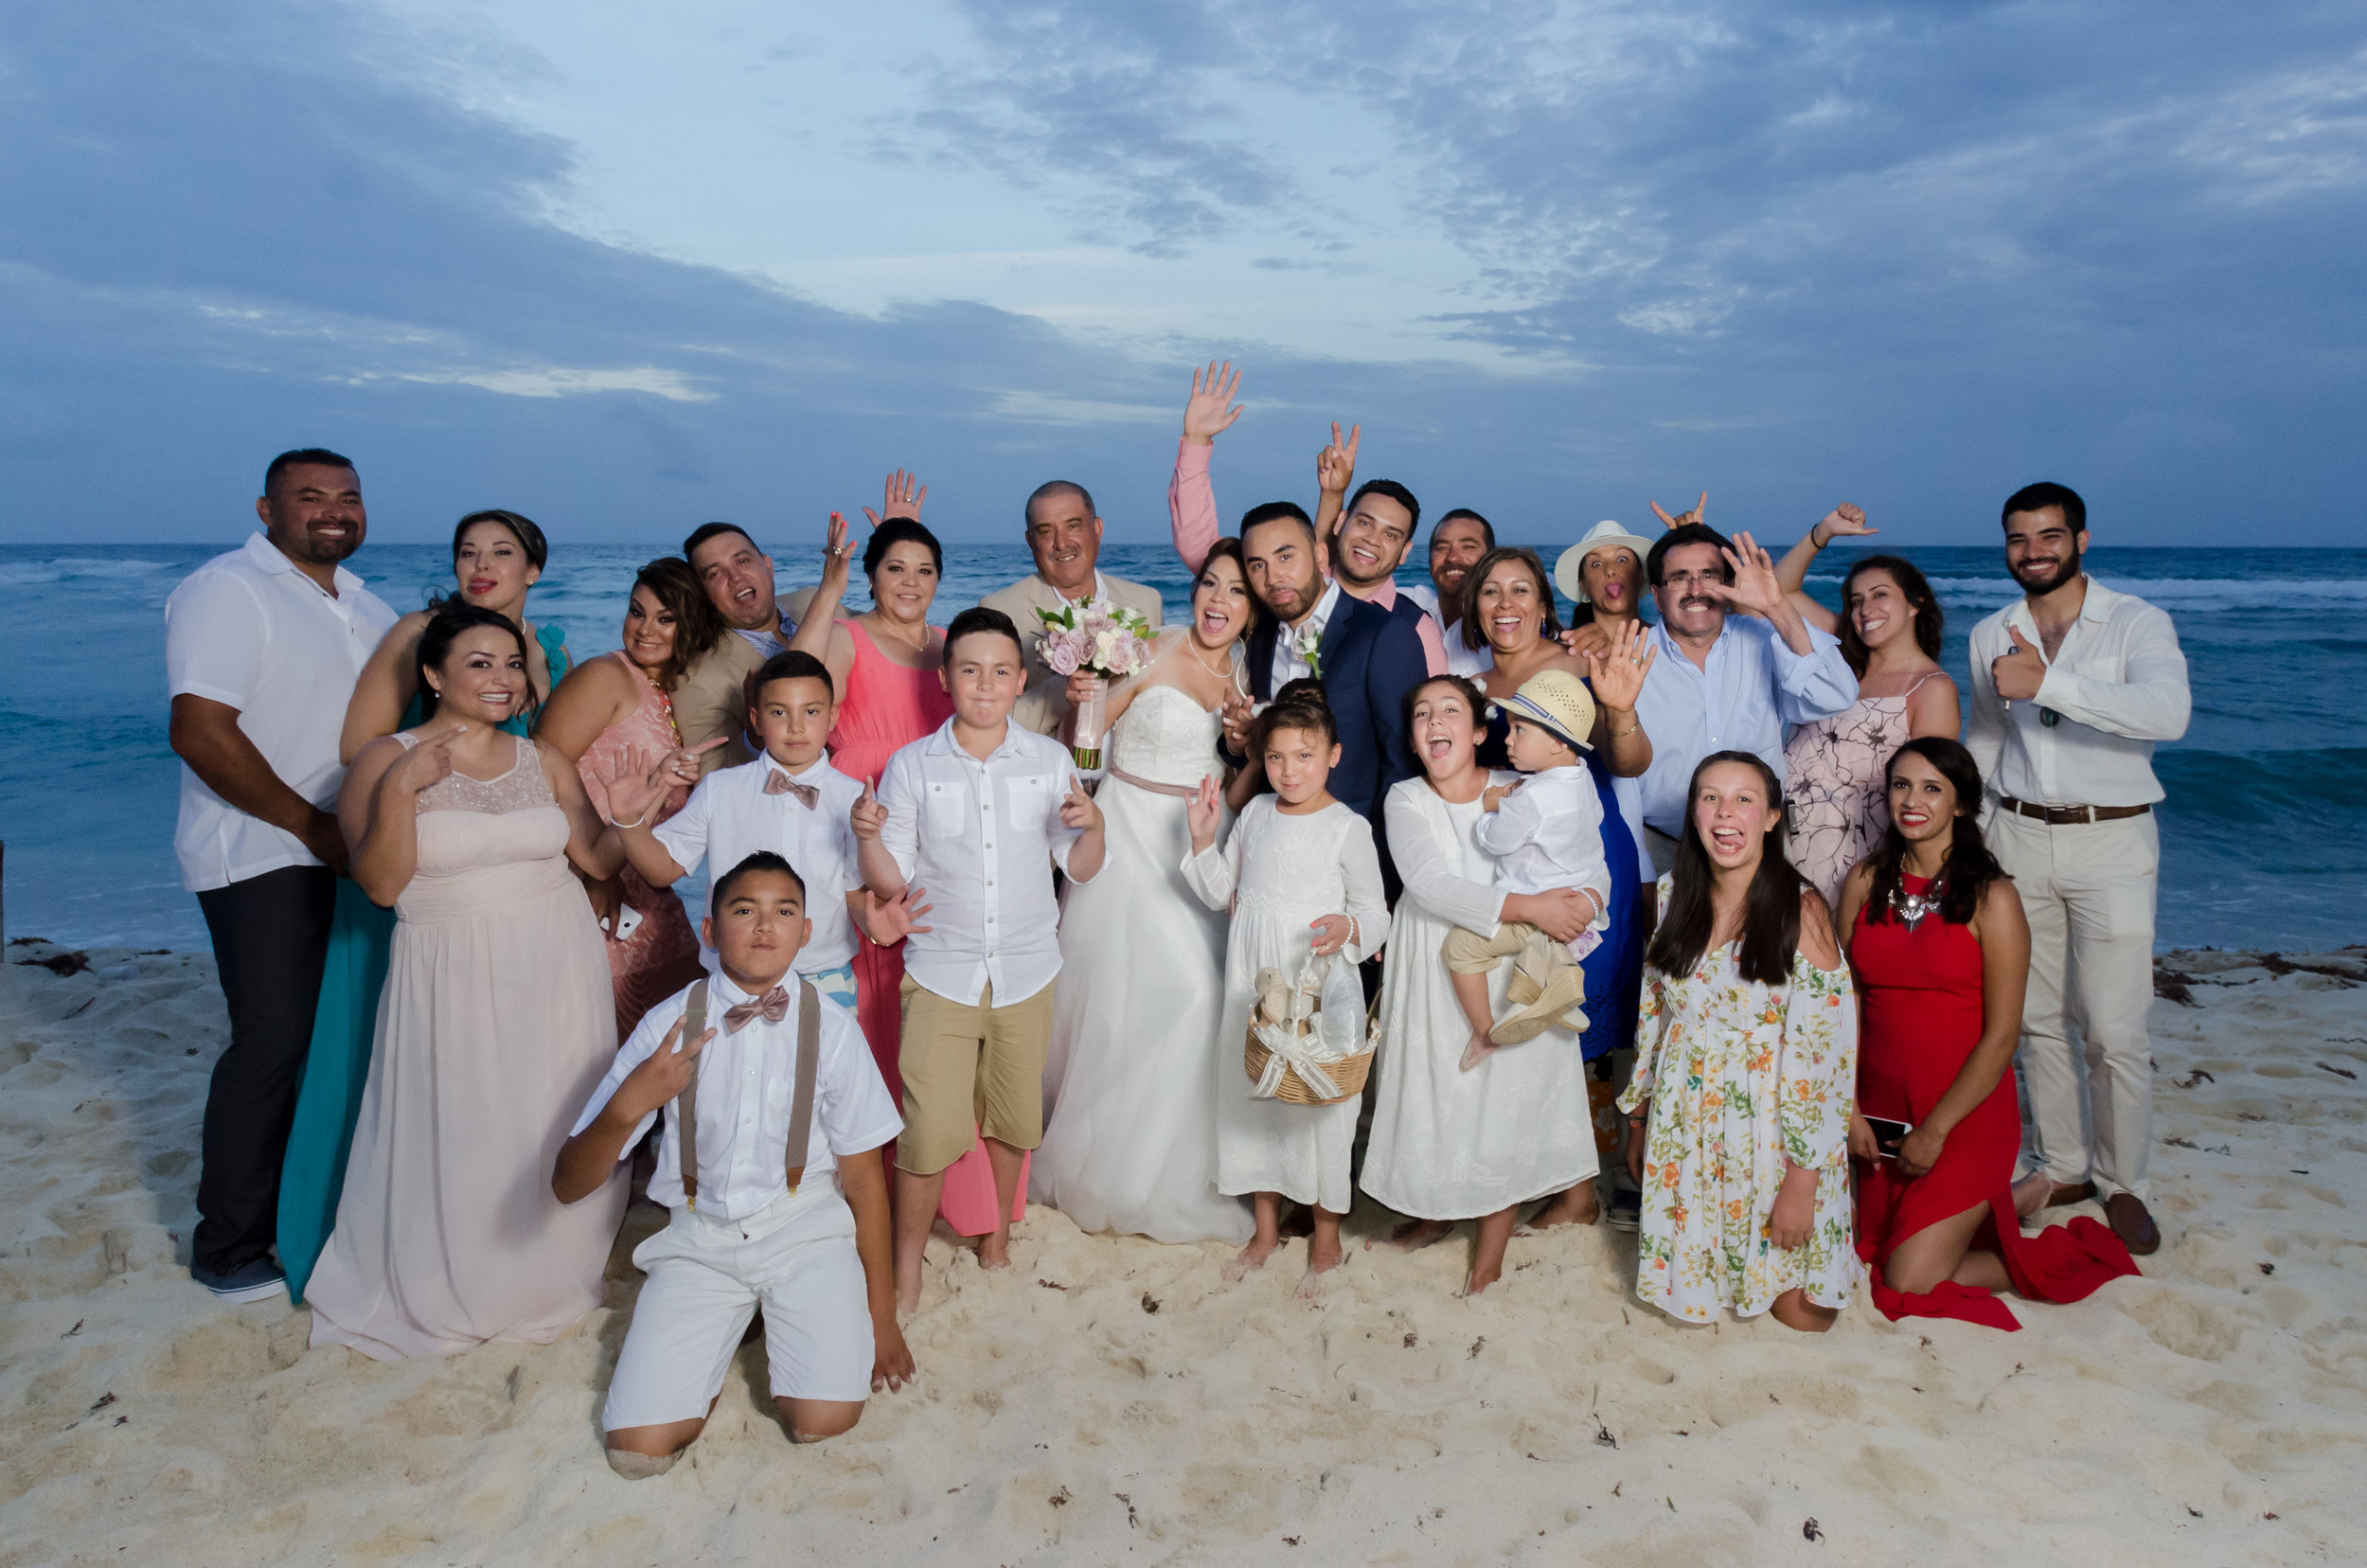 Family formal shot on the beach